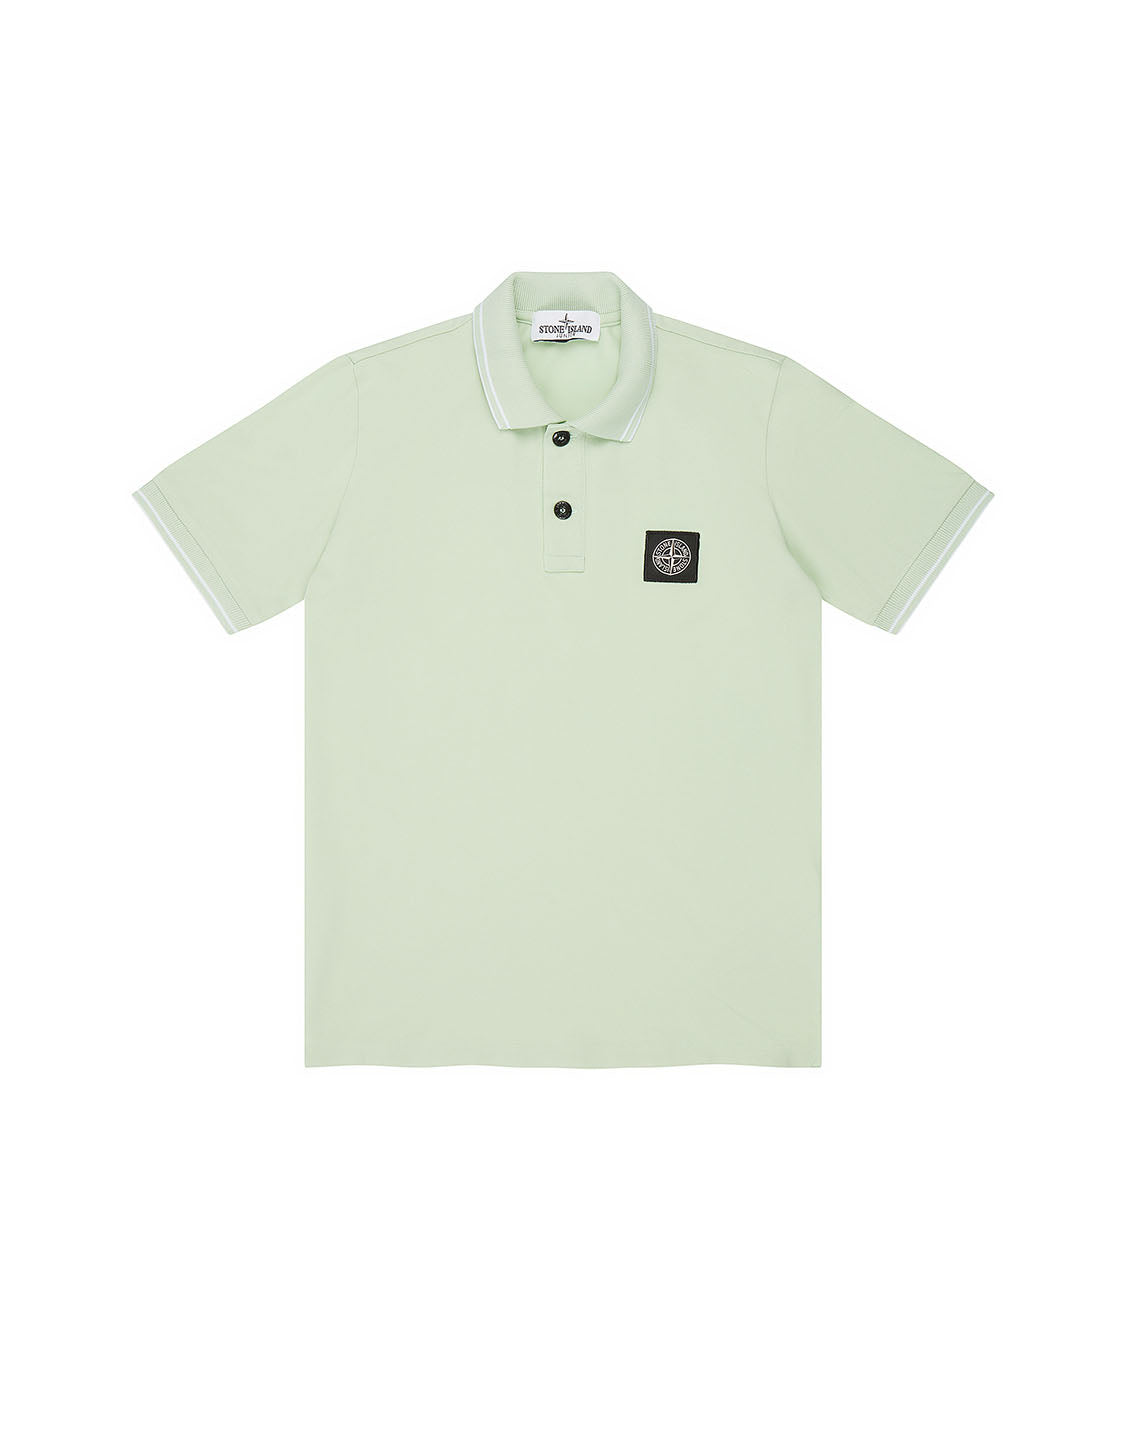 21348 Polo Shirt in Light Green